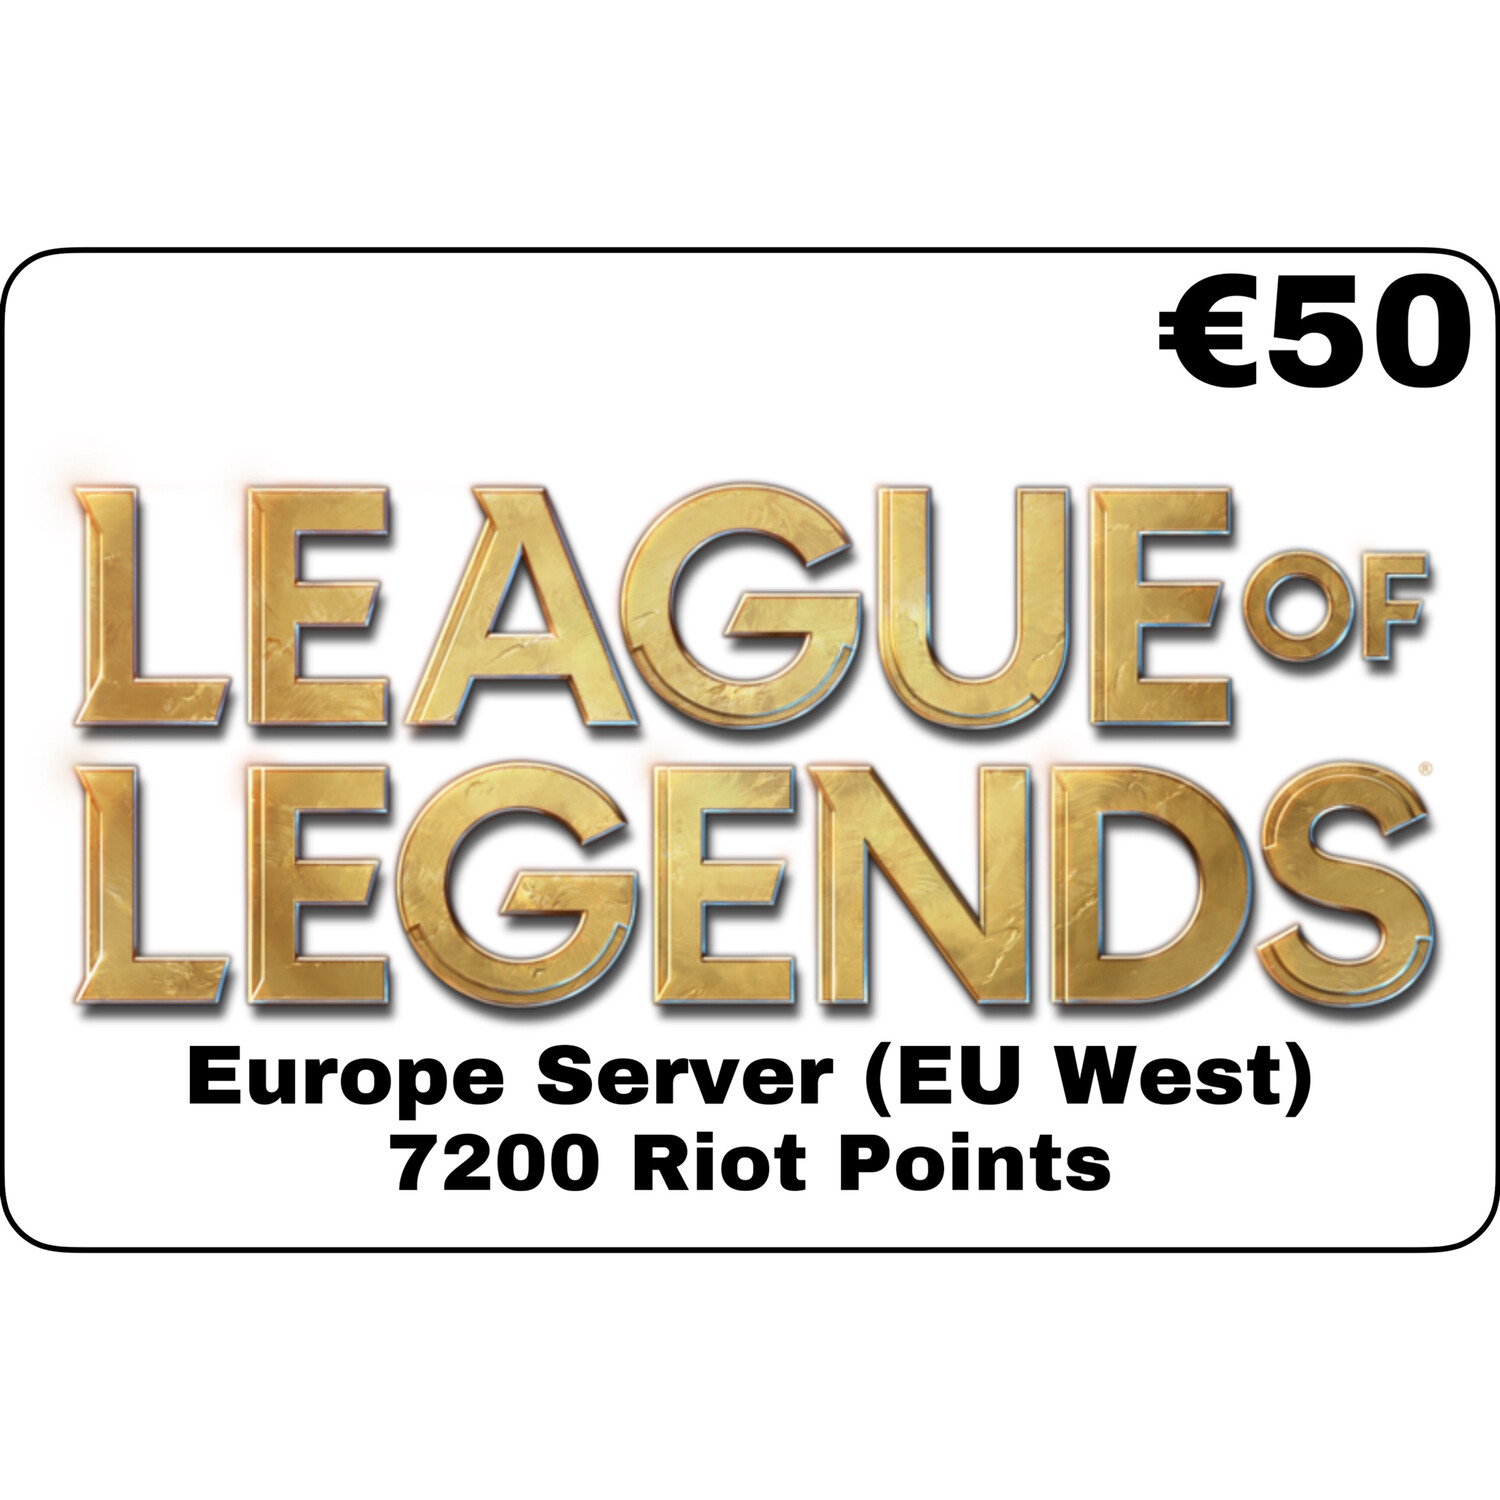 League of Legends EUR €50 Europe Server 7200 Riot Points EU West